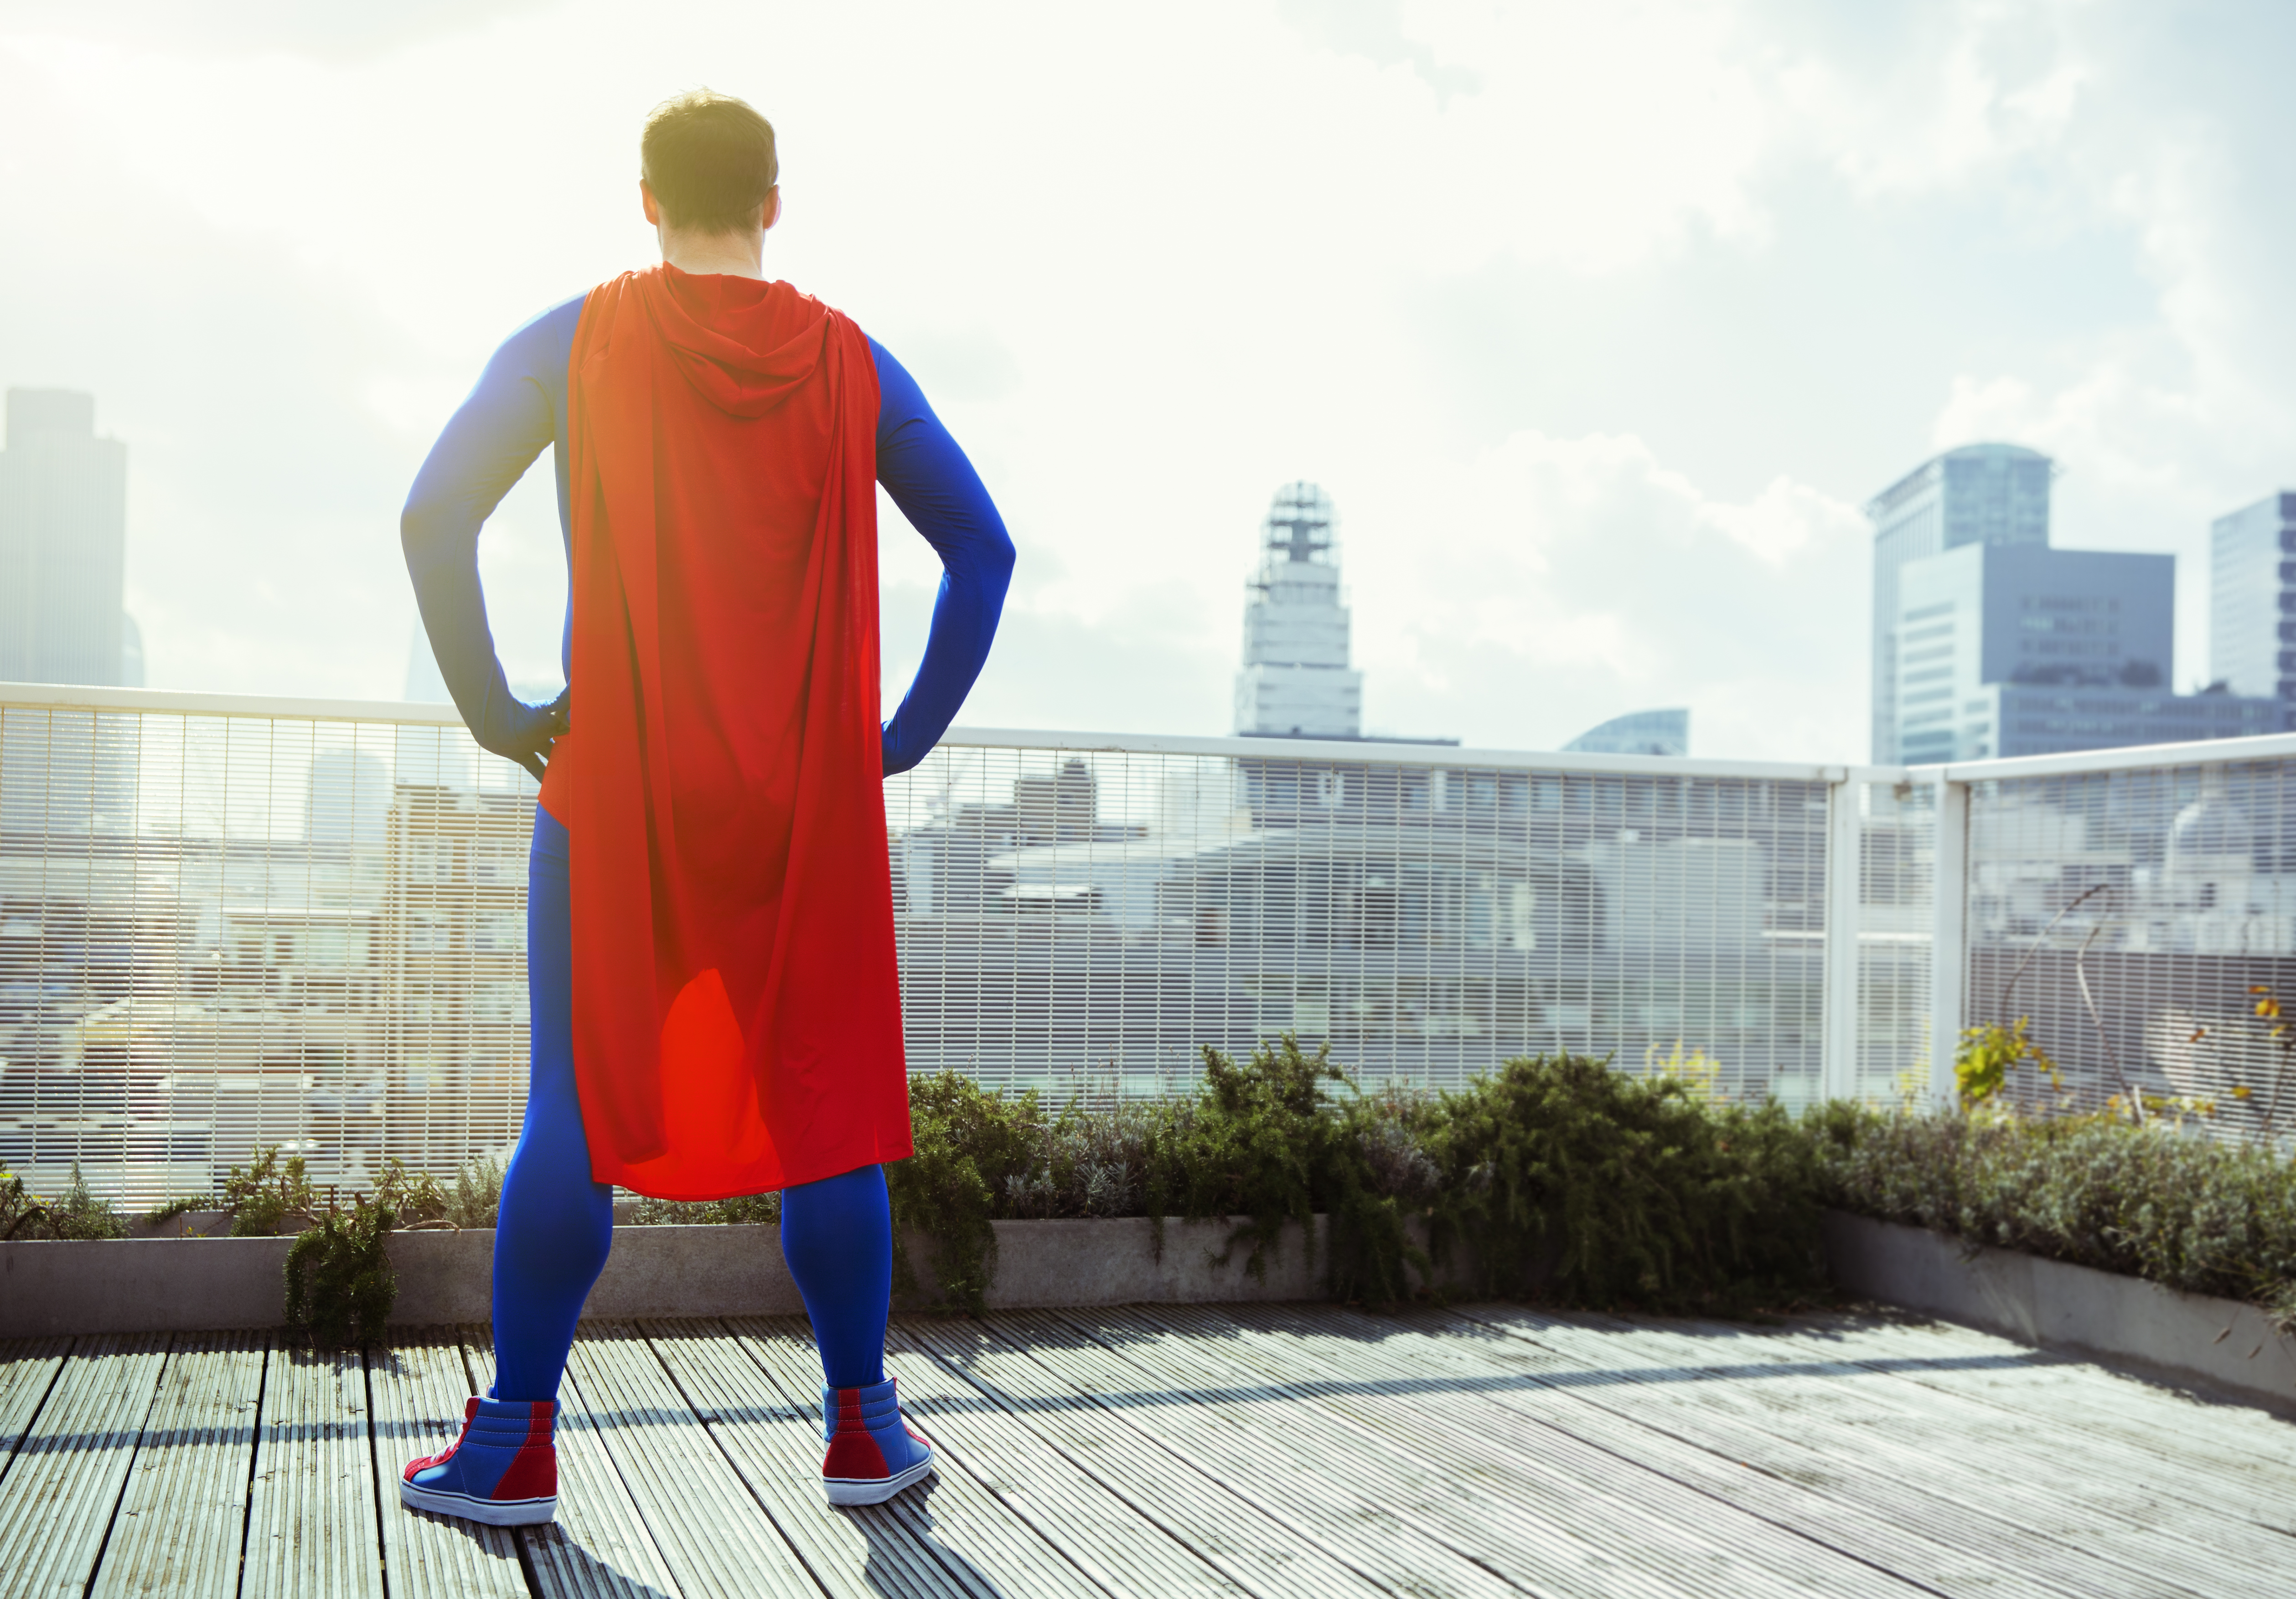 Superhero looking at view from city rooftop